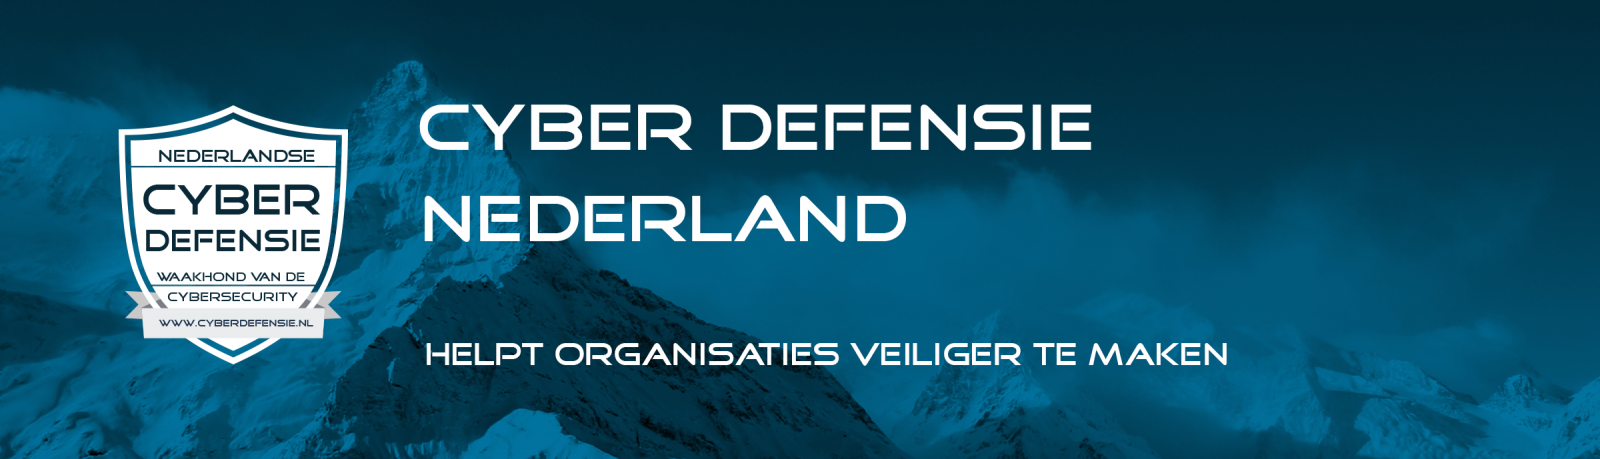 Cyberdefensie, Cybersecurity